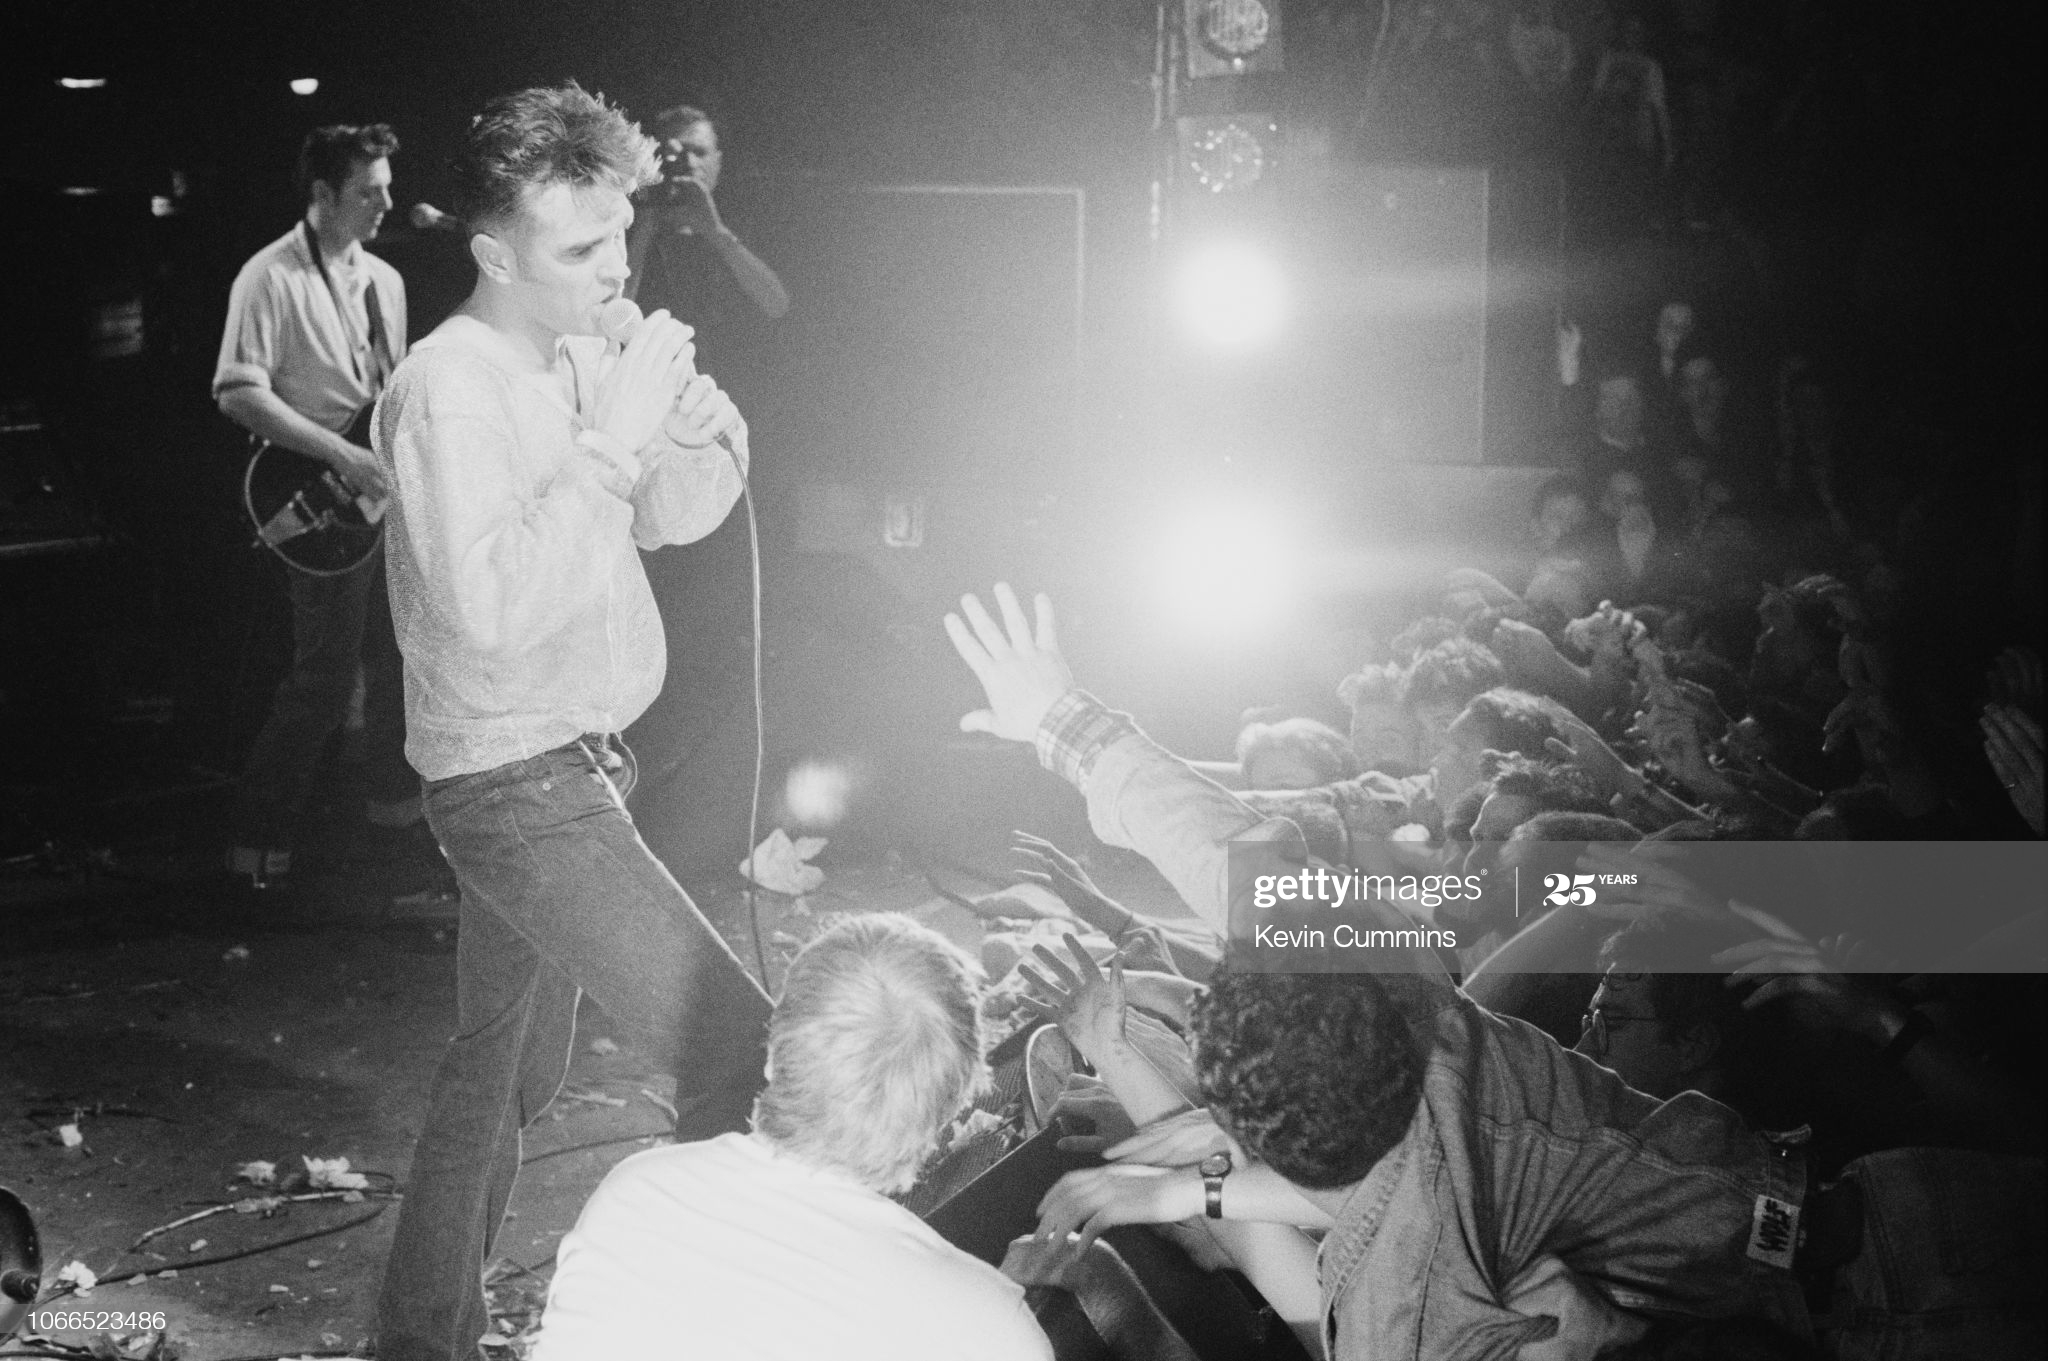 Morrissey ~ Dublin 27th April 1991 (iii) Kevin Cummins.jpg